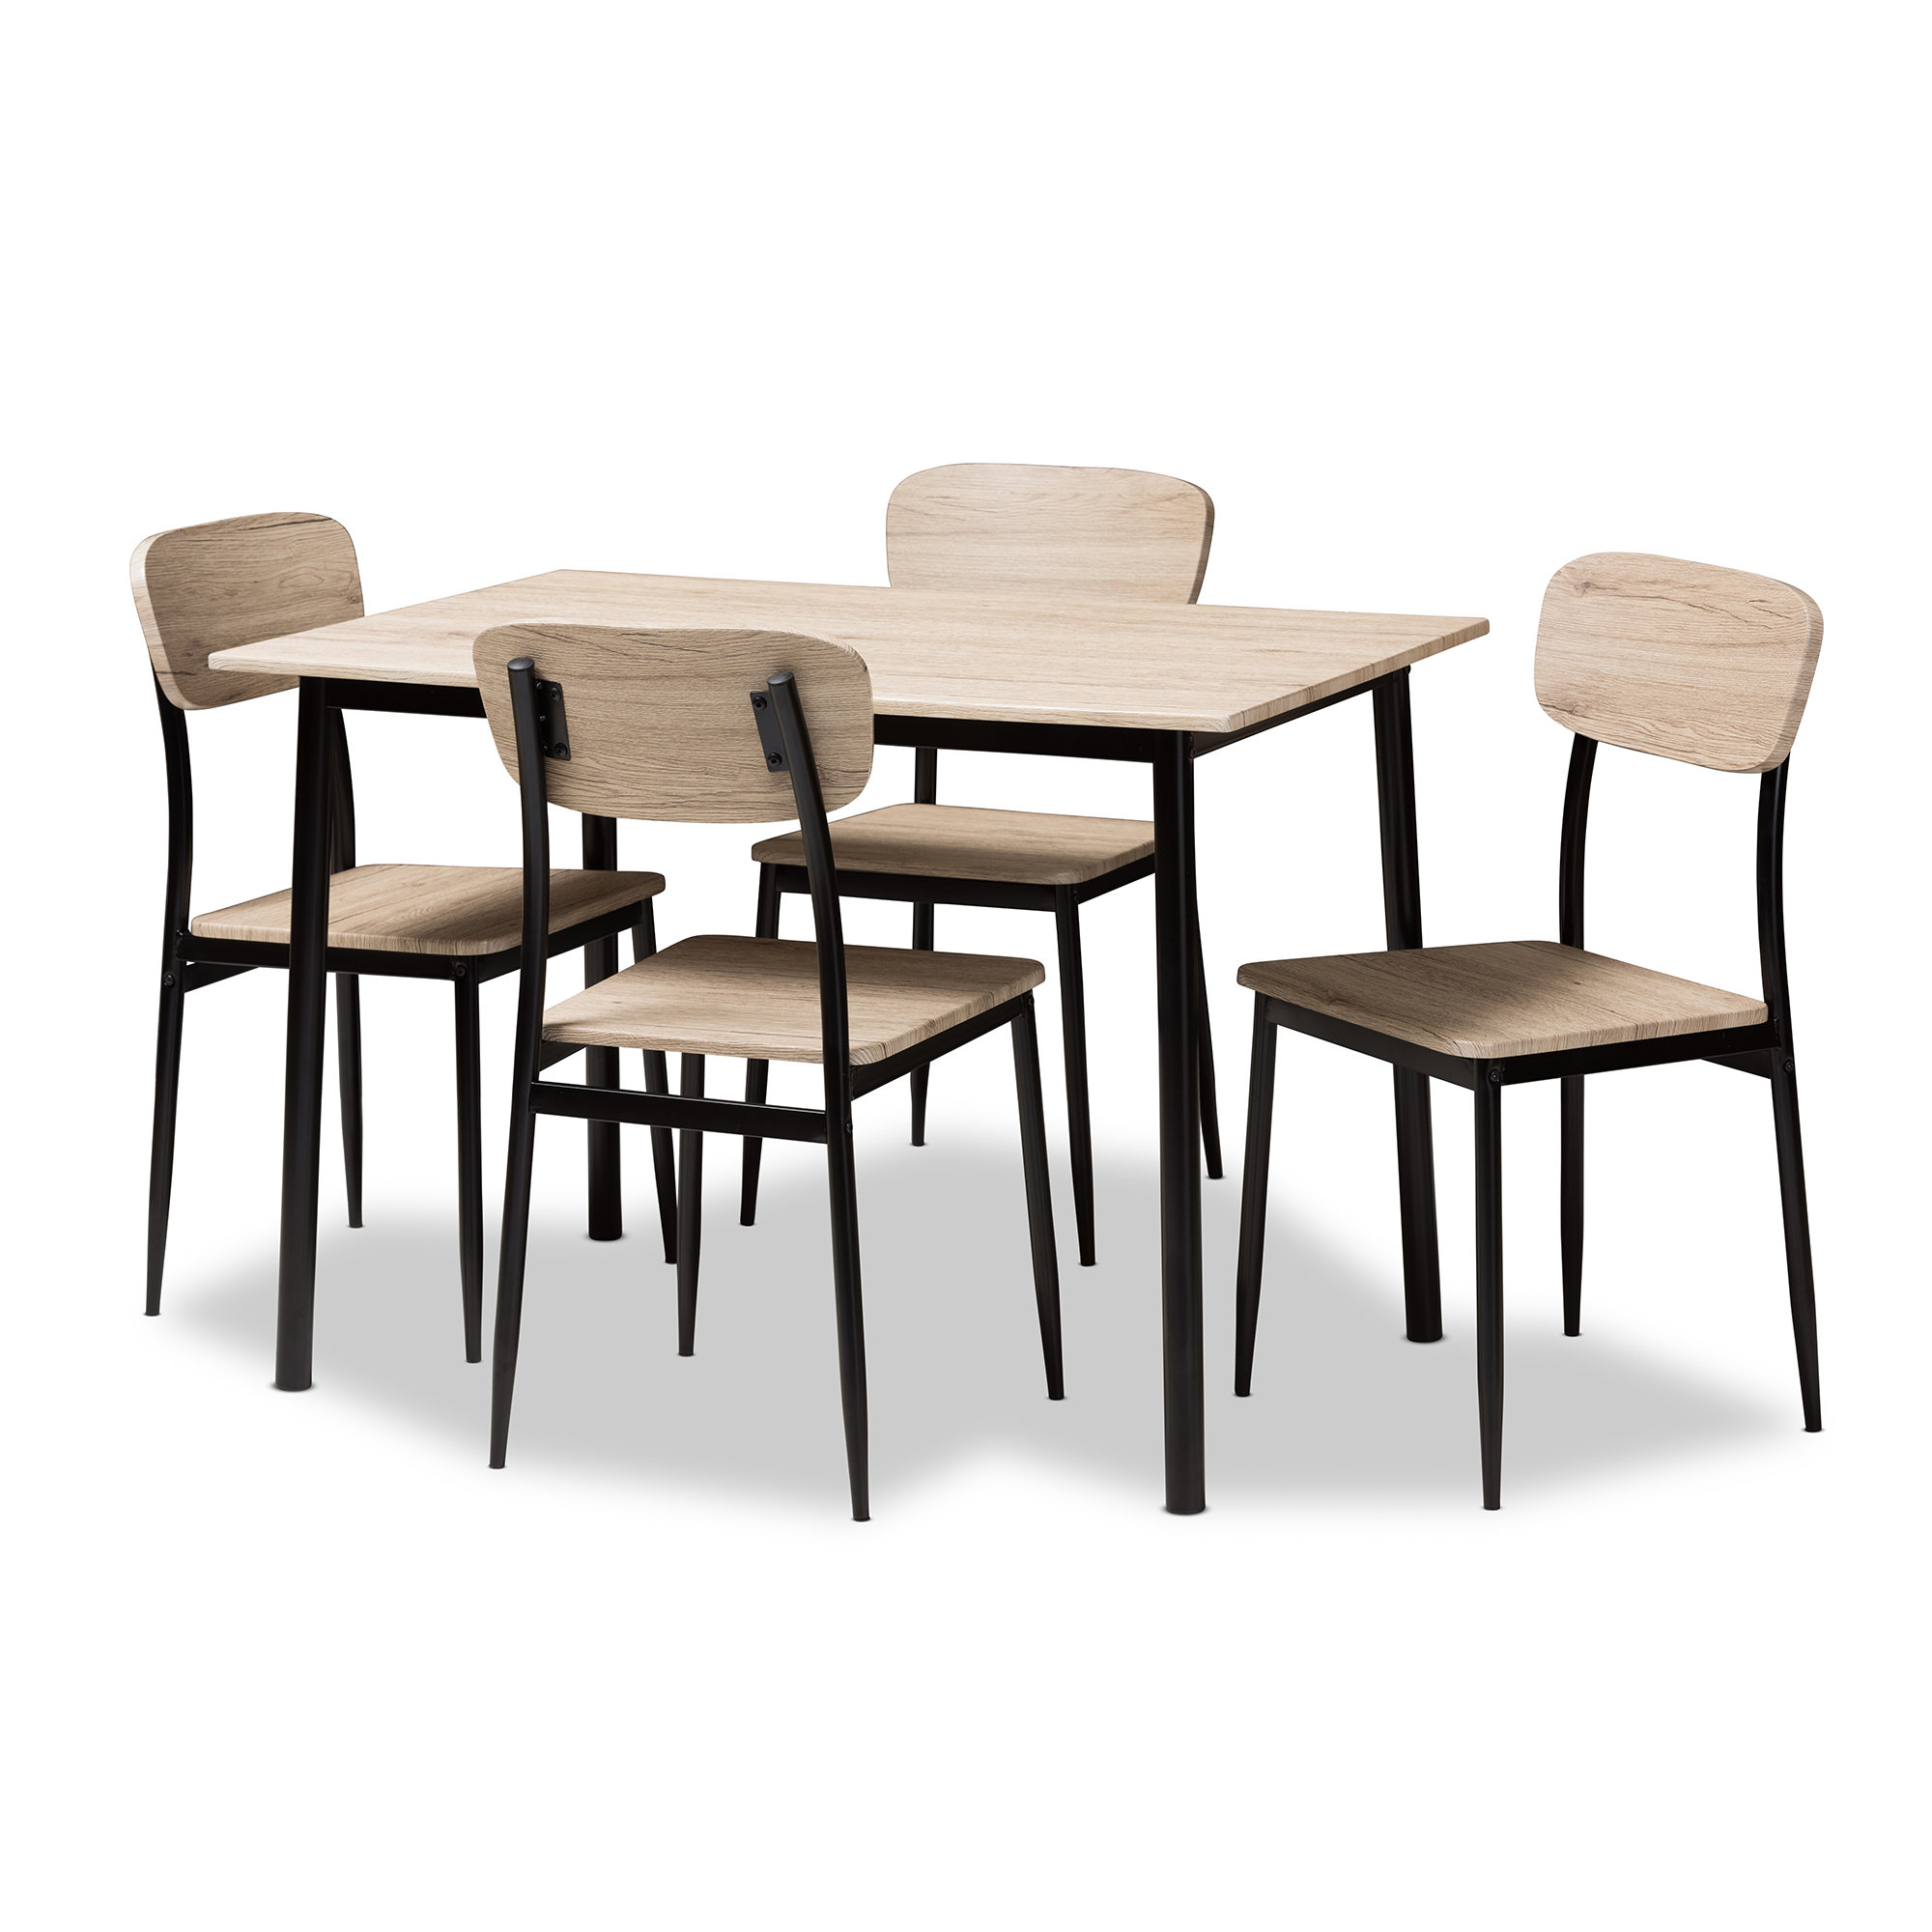 Millwood Pines Wiggs 5 Piece Dining Set & Reviews | Wayfair Throughout Most Recent Kaelin 5 Piece Dining Sets (View 4 of 20)